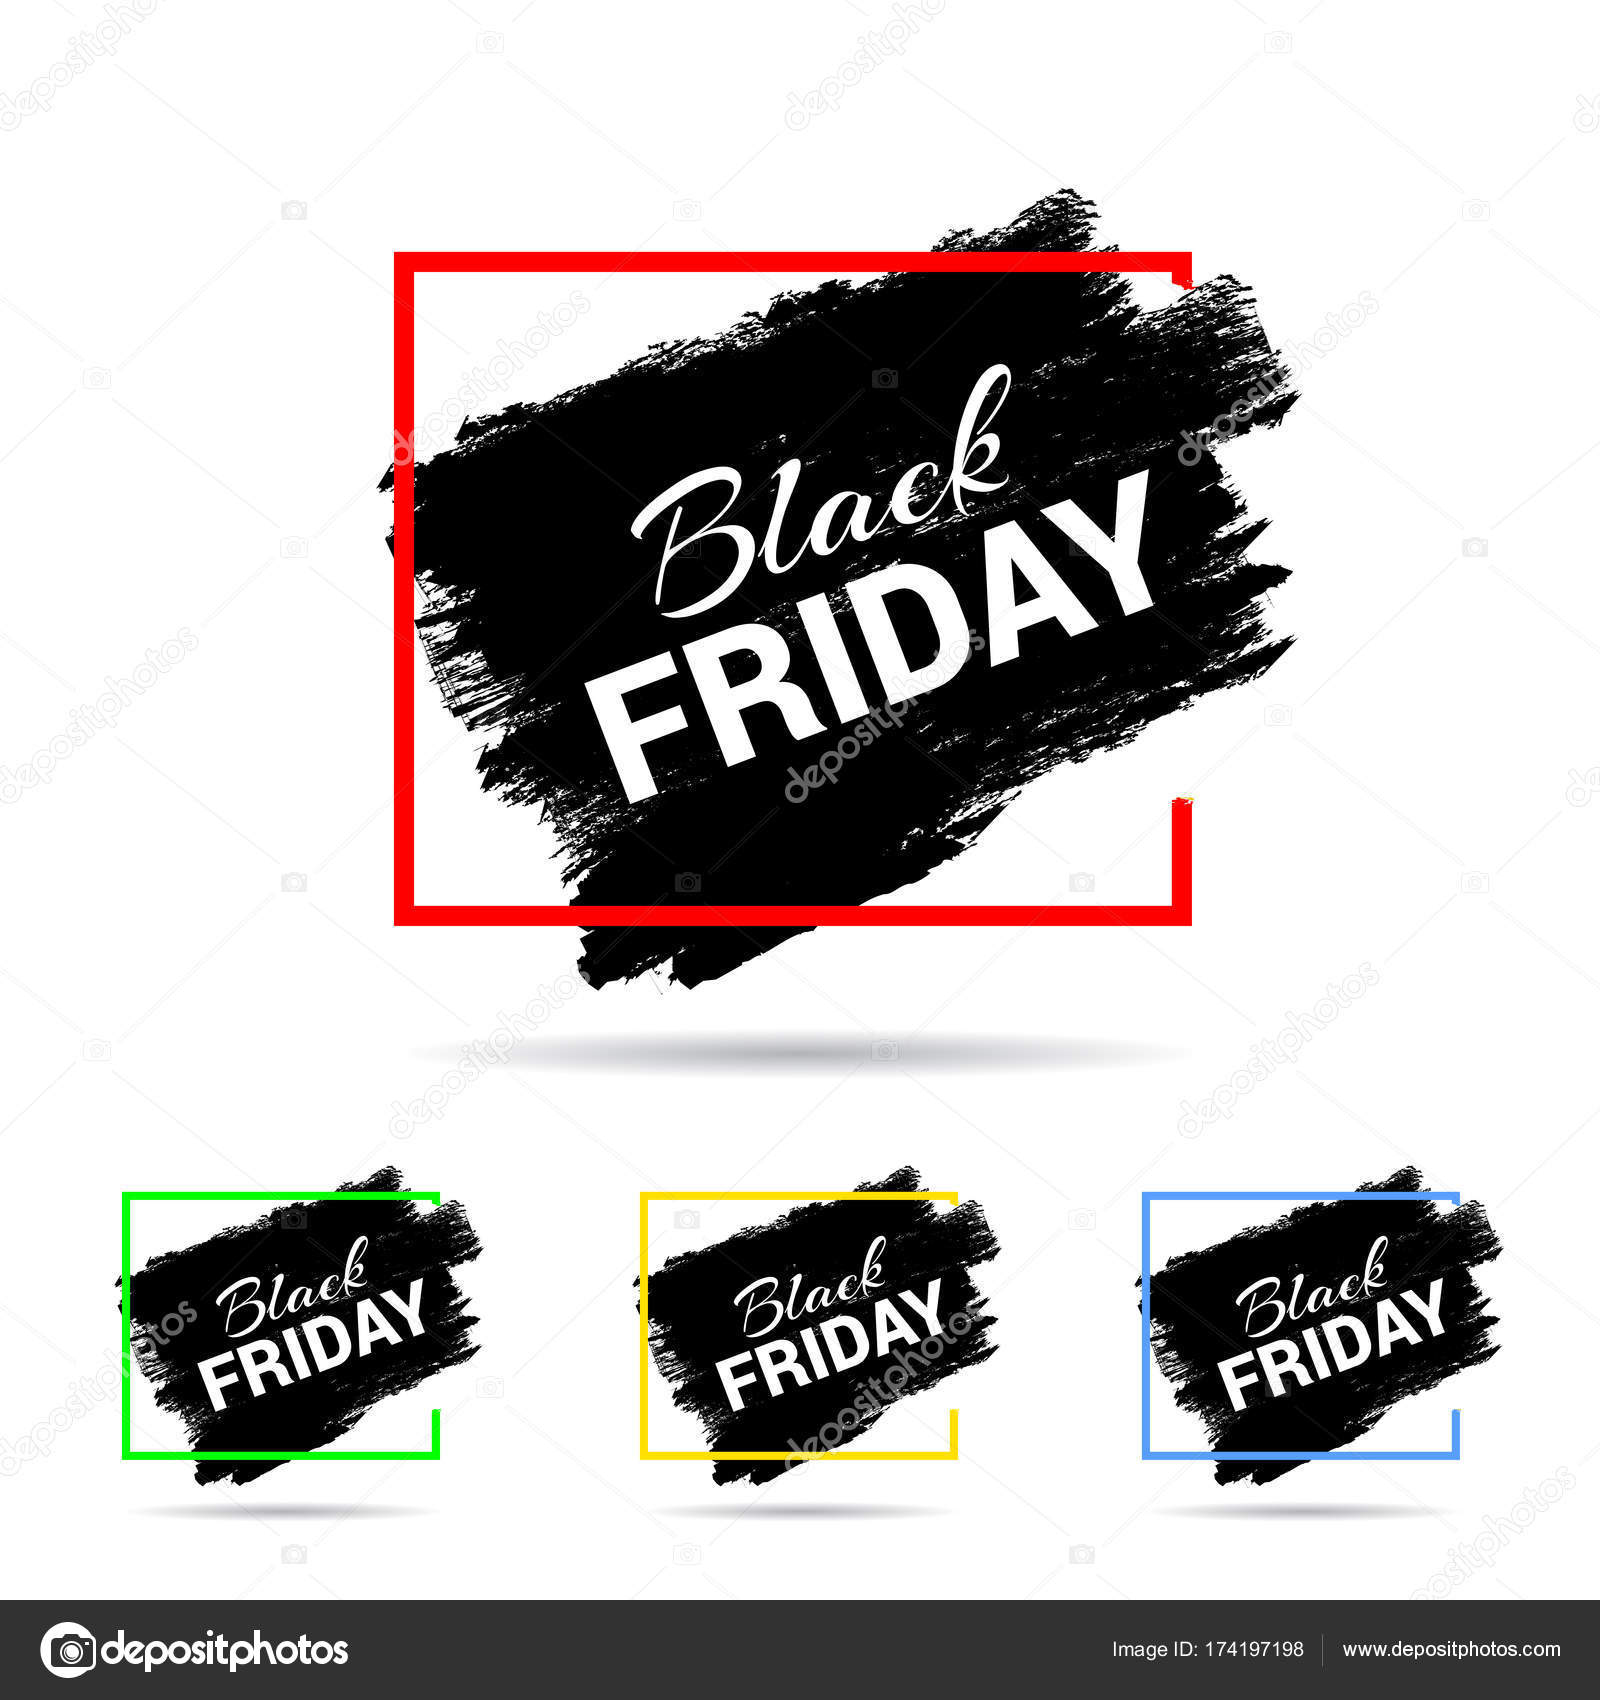 Simple Black Friday Cards Black Paint Brush Mark White Background Stock Vector C Ibrandify 174197198